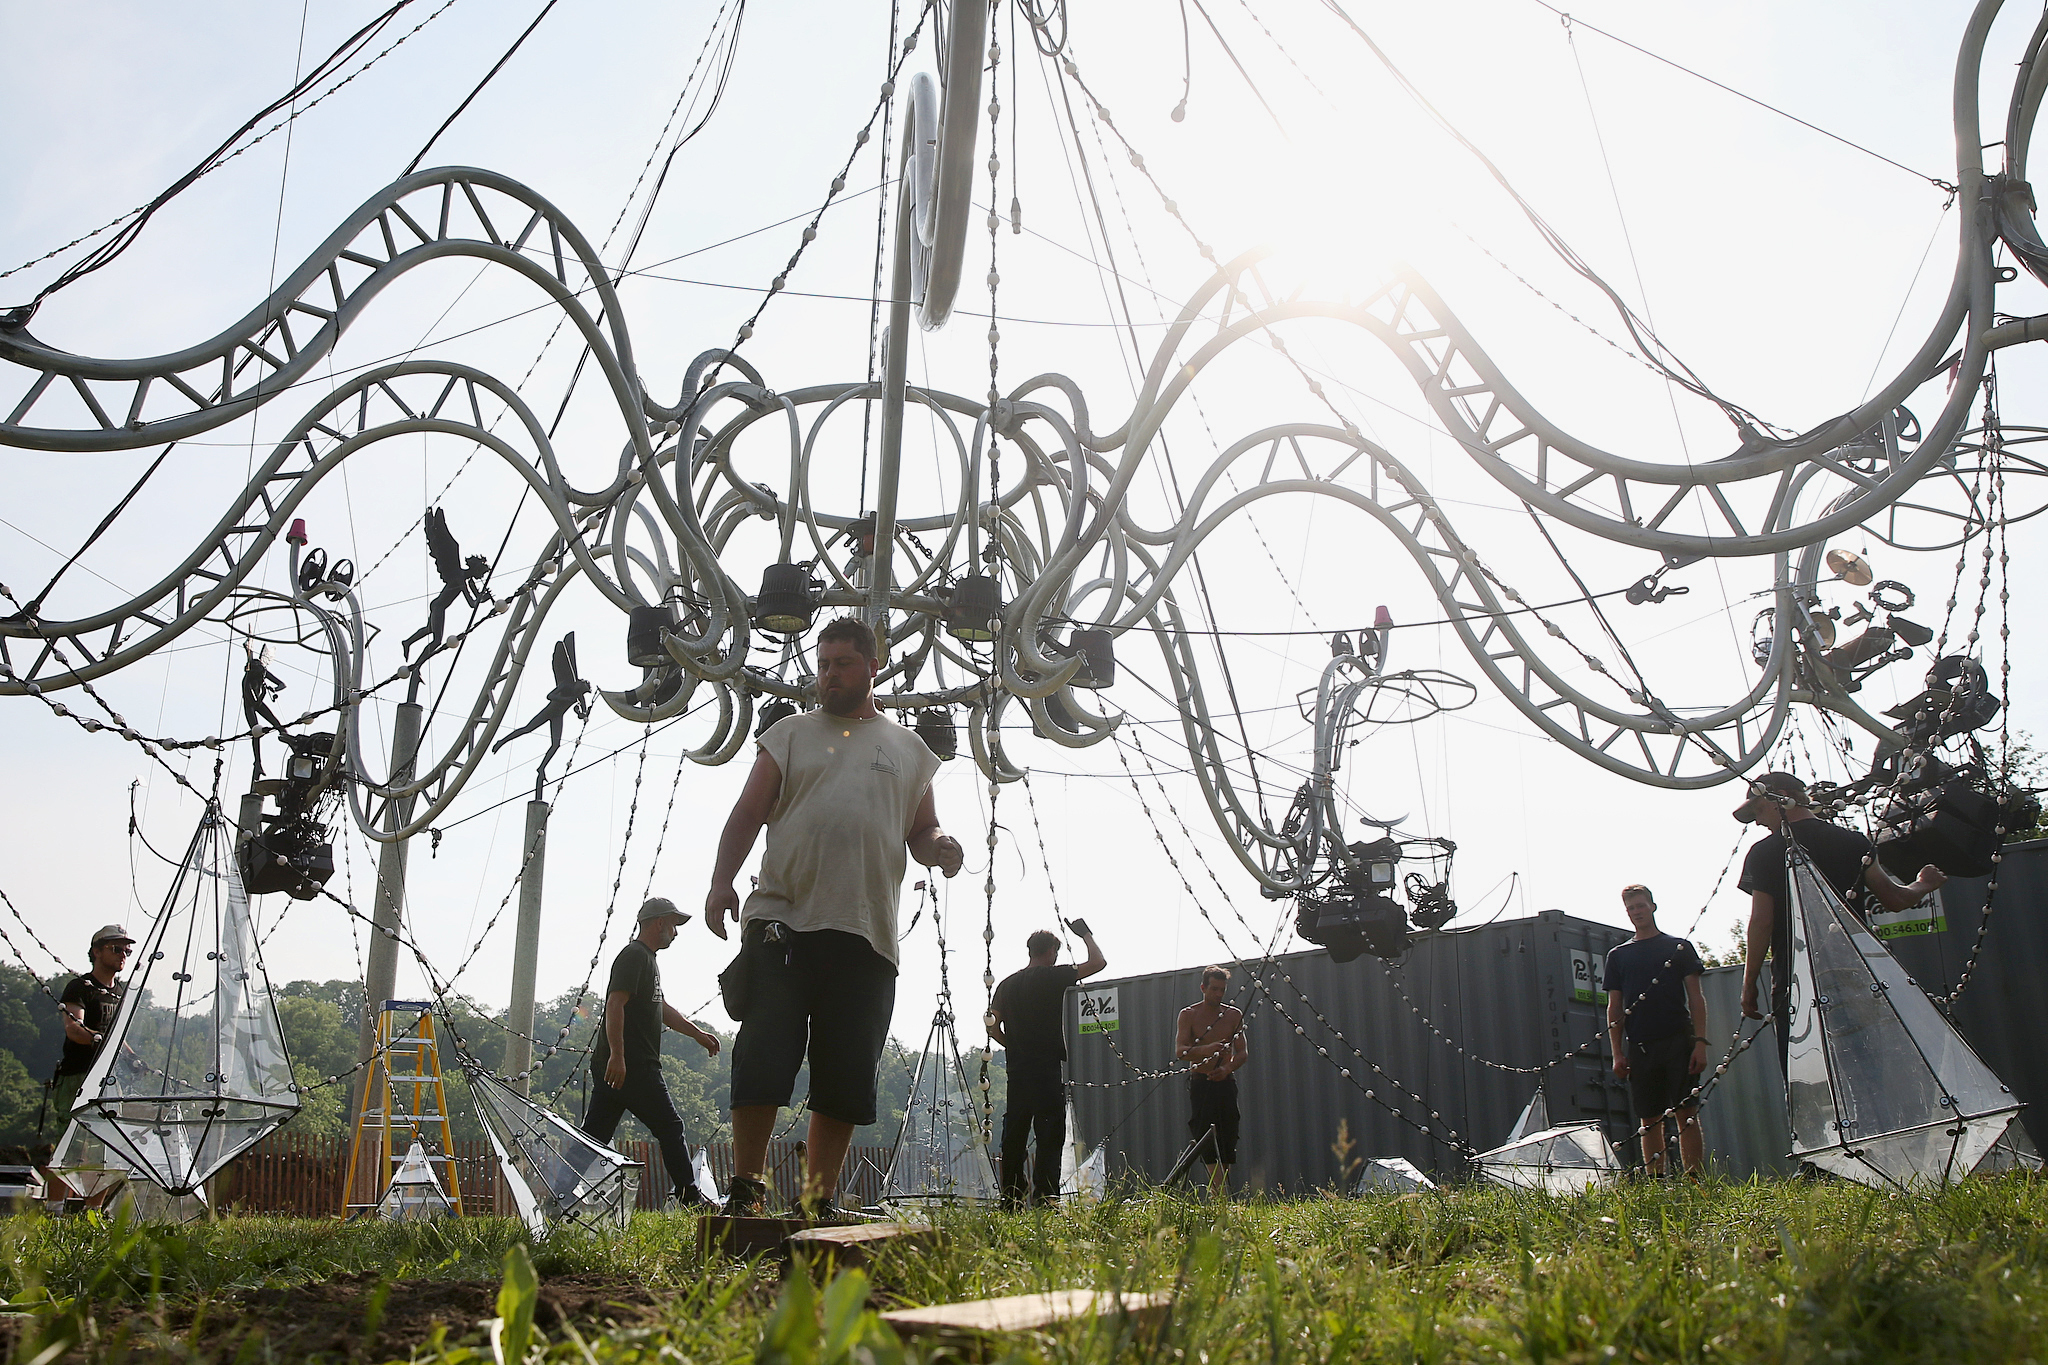 Workers raise the Cristal Palace human chandelier during a test along Kelly Drive near Fountain Green Drive in Philadelphia on Tuesday, May 29, 2018. French performance troupe Transe Express will perfor on human chandelier as part of this year´s Philadelphia International Festival of the Arts. TIM TAI / Staff Photographer